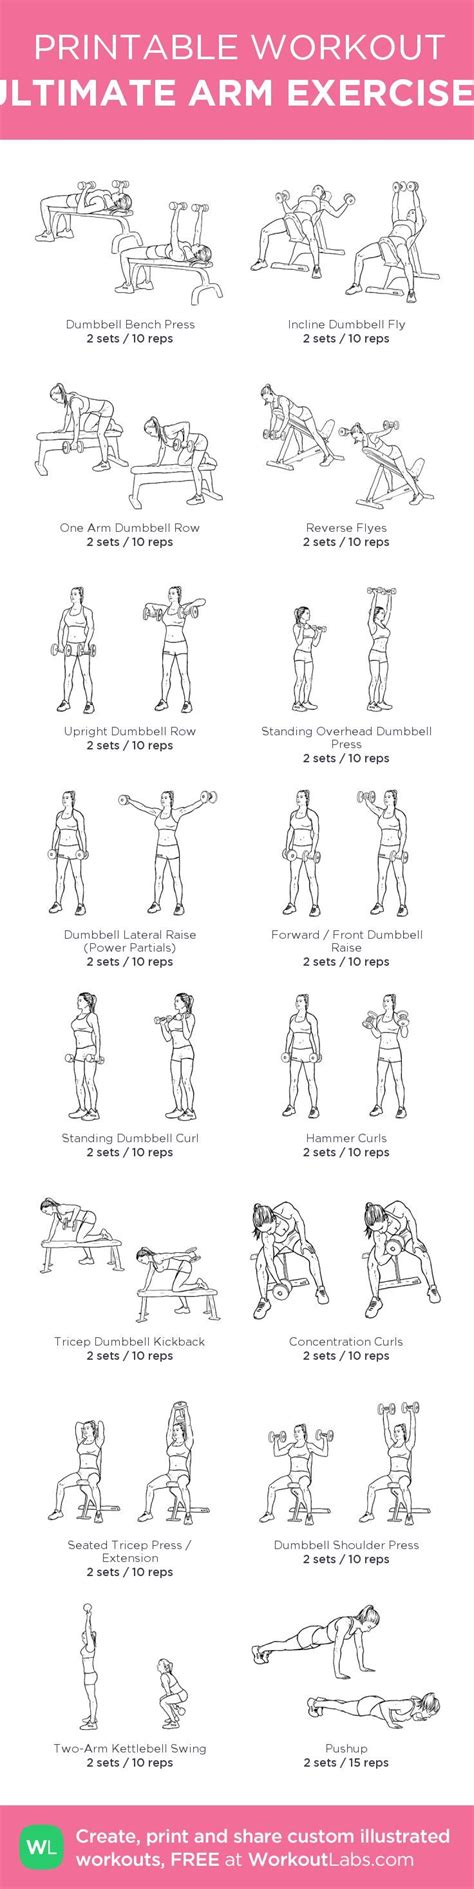 printable workout to customize and print ultimate at home ultimate arm exercises my custom printable workout by